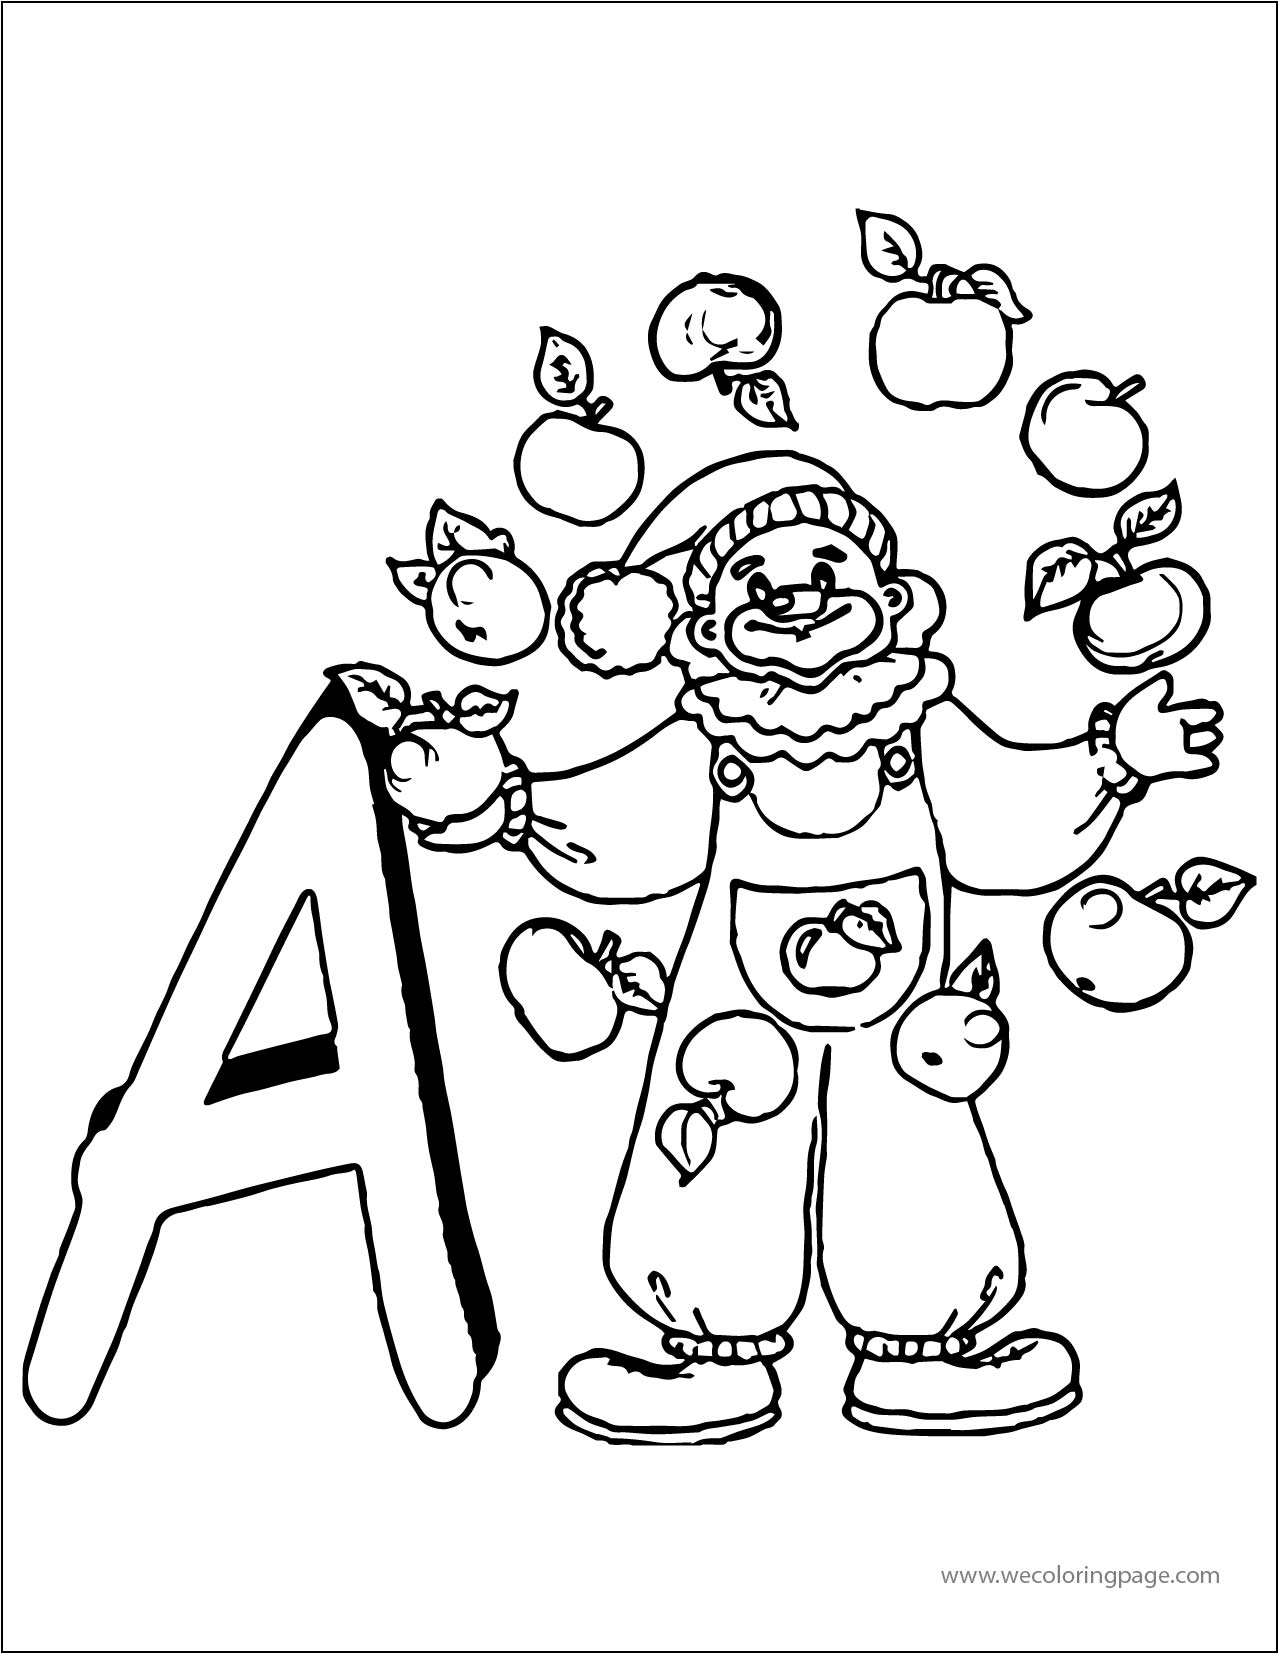 A Apple Clown A4 Printable Coloring Page | Wecoloringpage.com